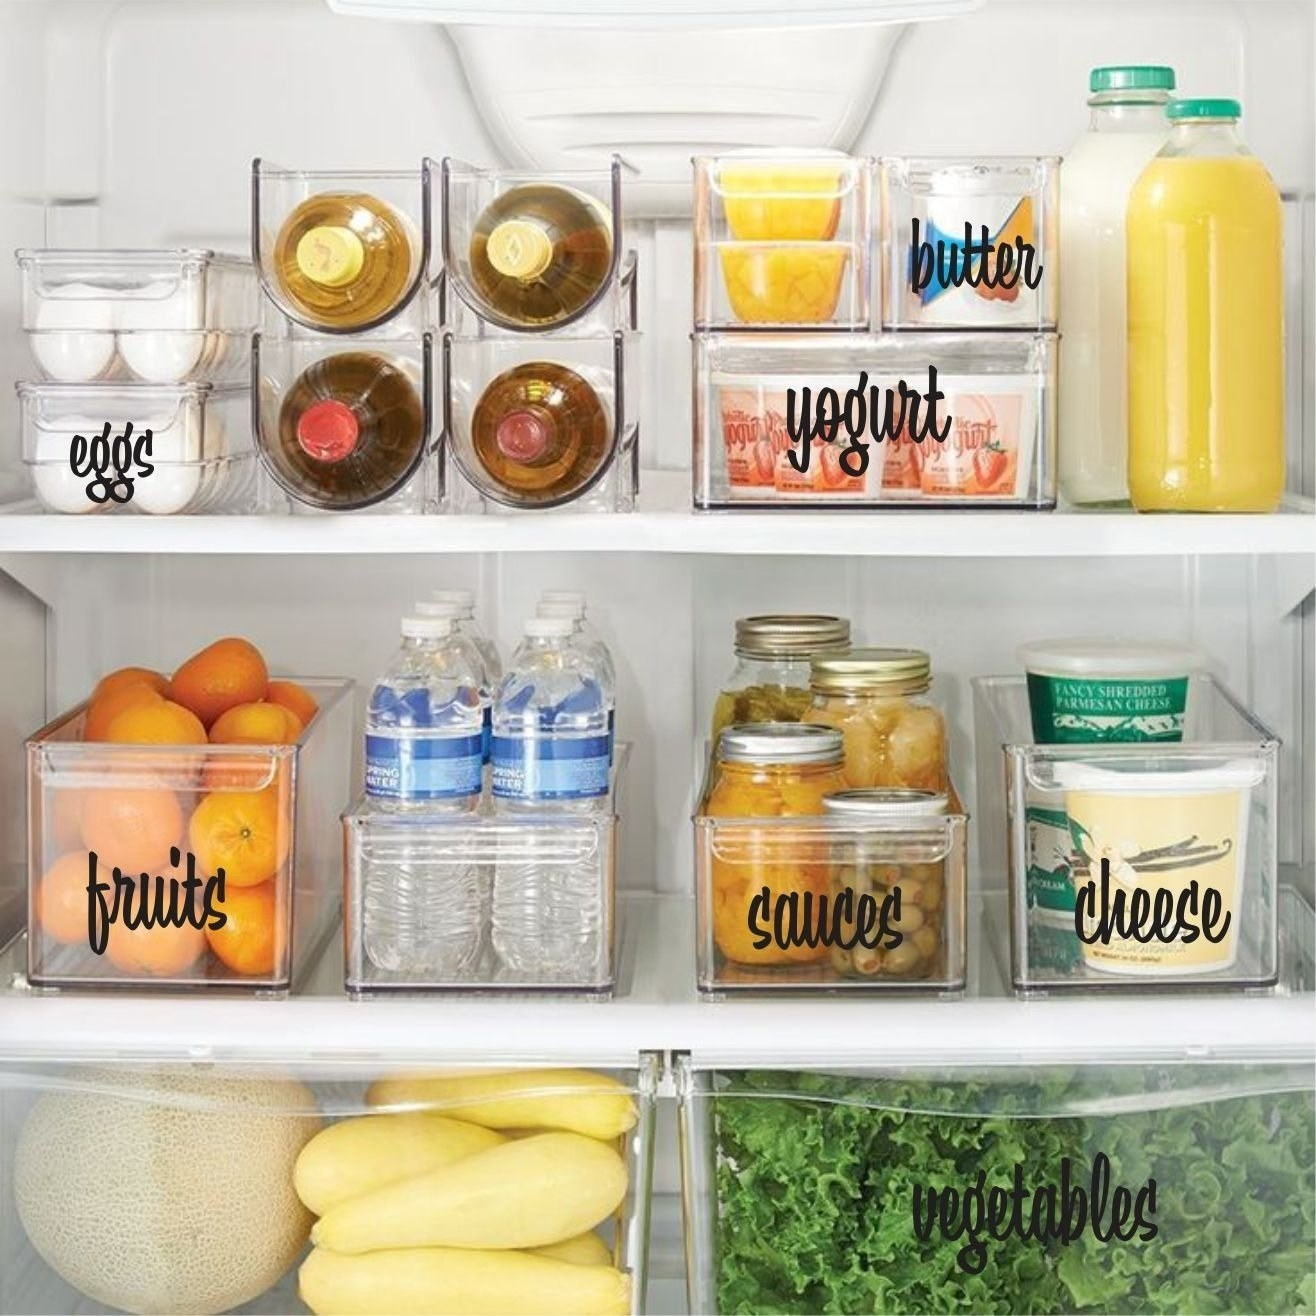 fridge with plastic bins labeled with black bold easy-to-read cursive vinyl cutouts